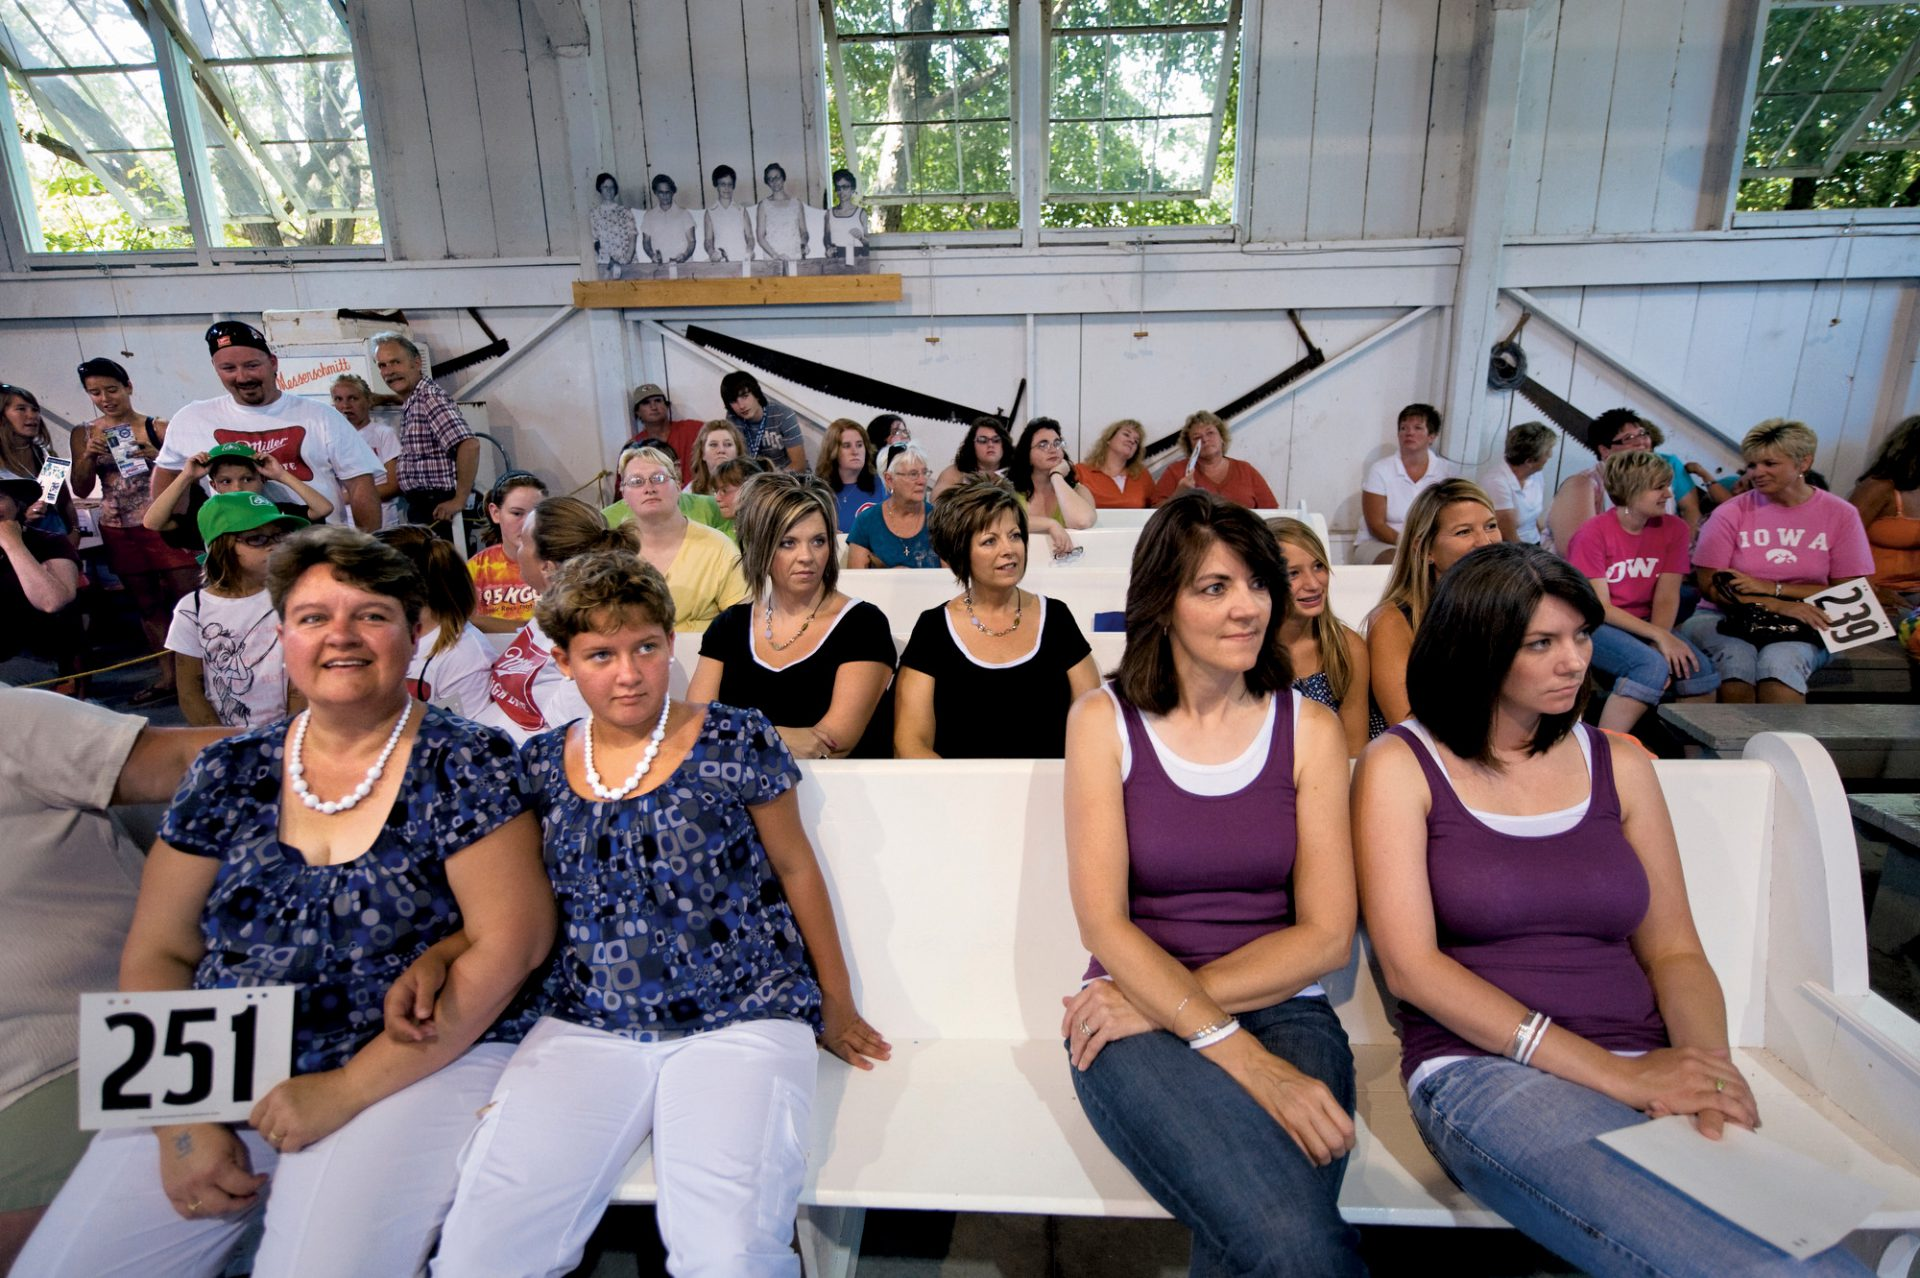 Photo: The look-alike contest for mothers and daughters at the Iowa state fair.